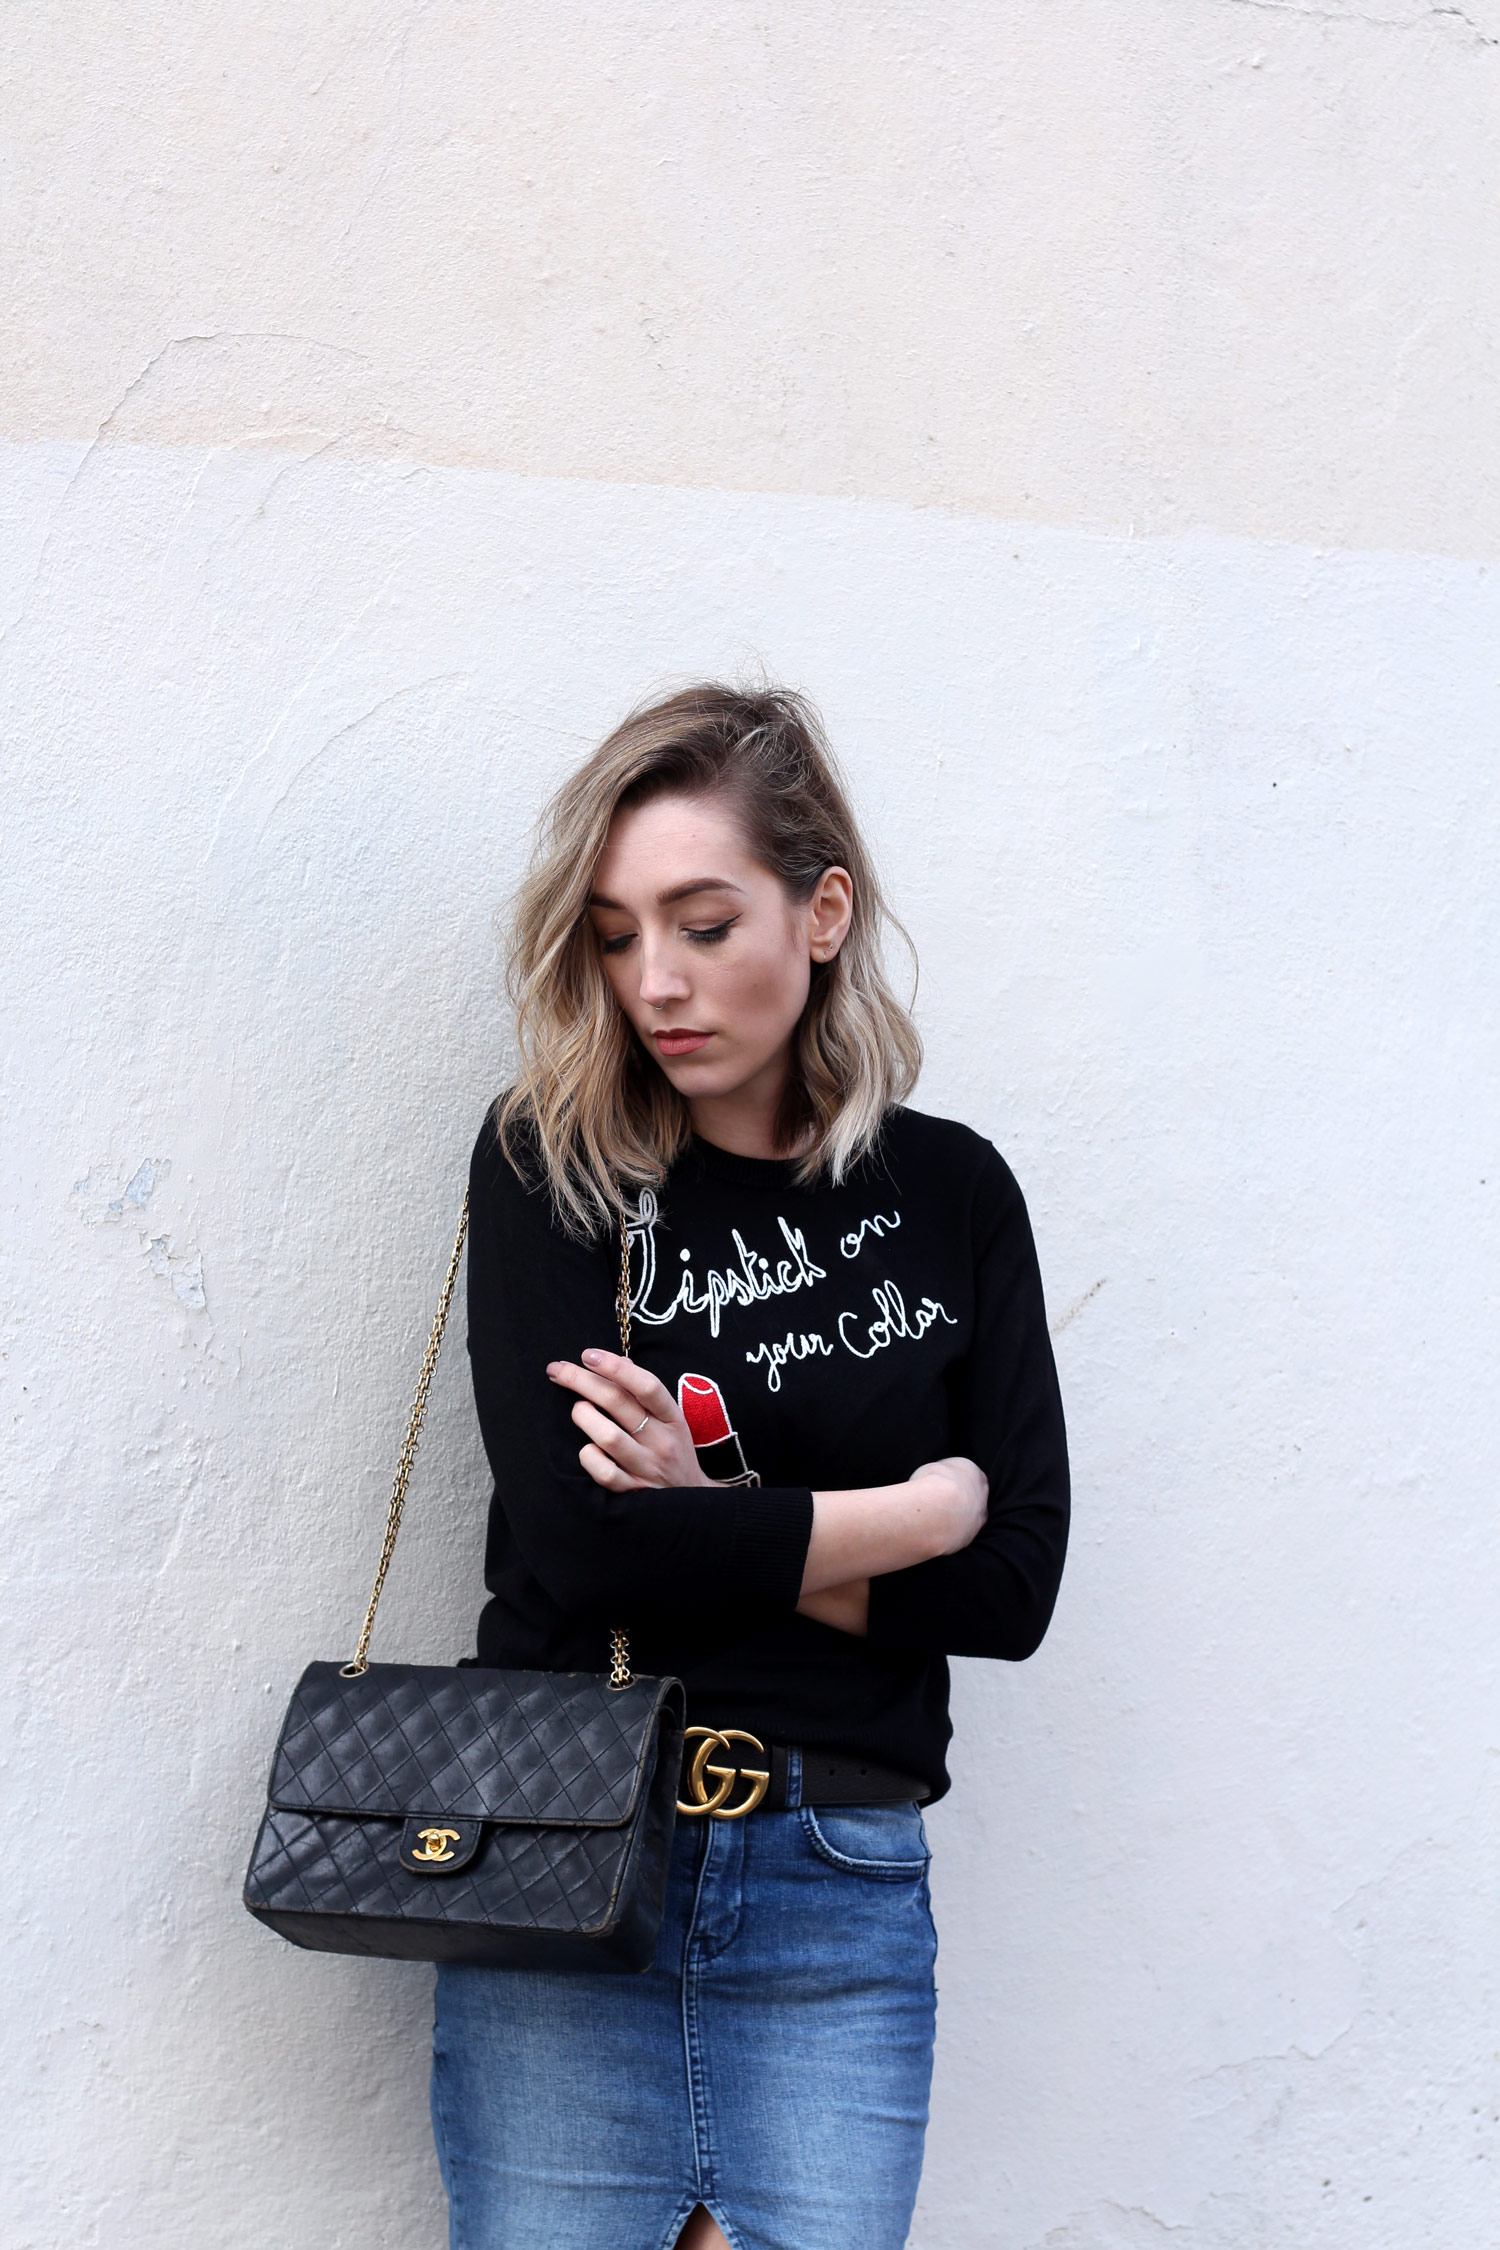 joanie-clothing-slogan-jumper-denim-skirt-vintage-chanel-2